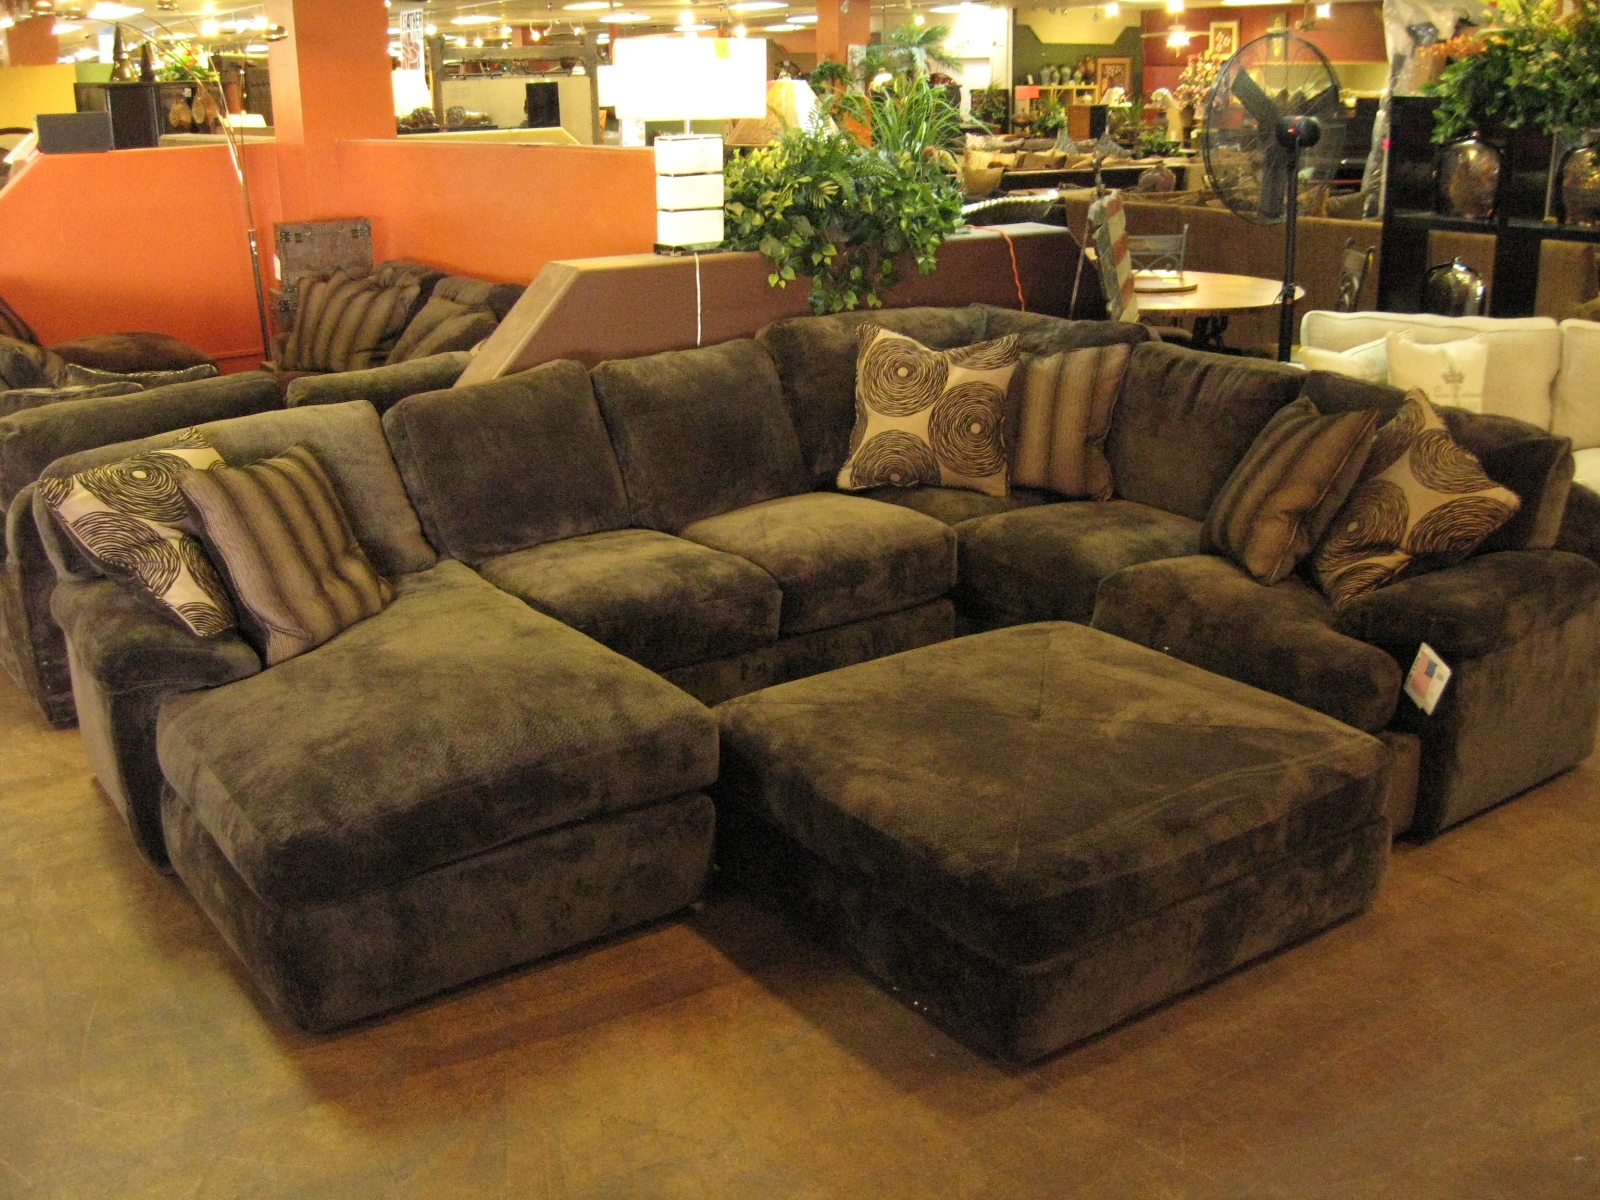 Robert Michaels Furniture Direct Furnishings Outlet With Regard To Champion Sectional Sofa (Image 12 of 15)